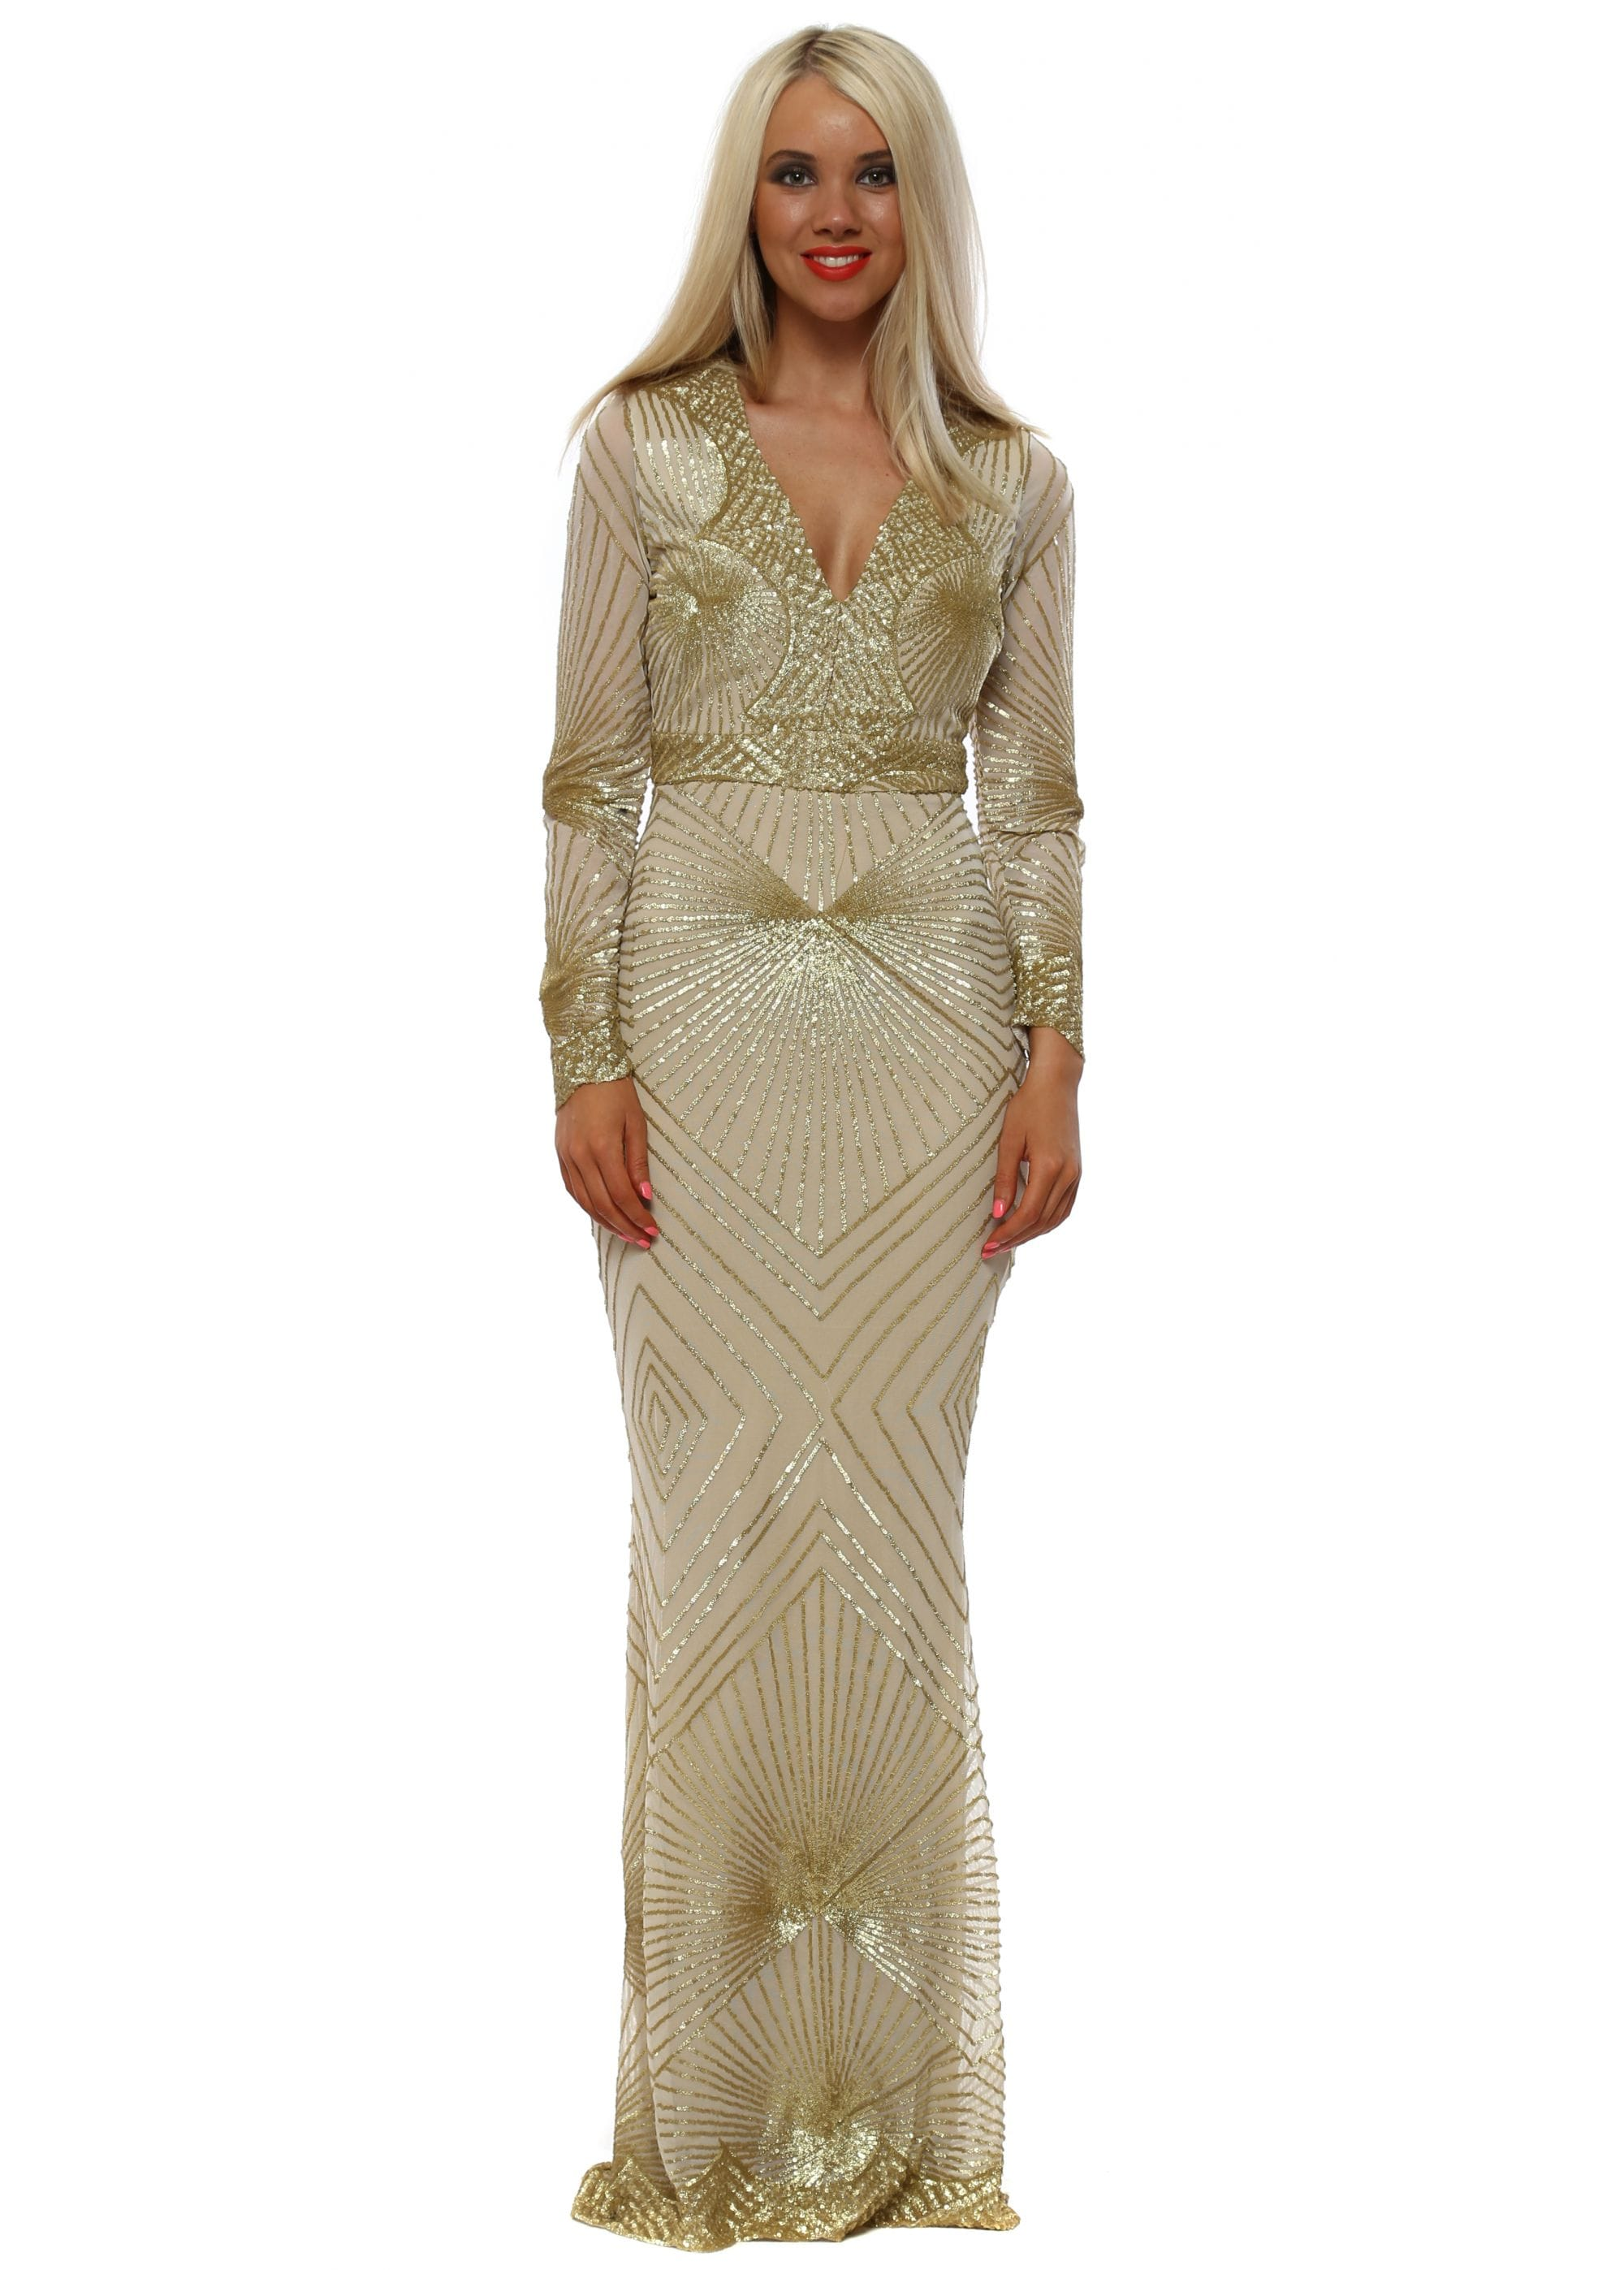 c9391c6970 Stephanie Pratt Starburst Gold Sequin Maxi Dress